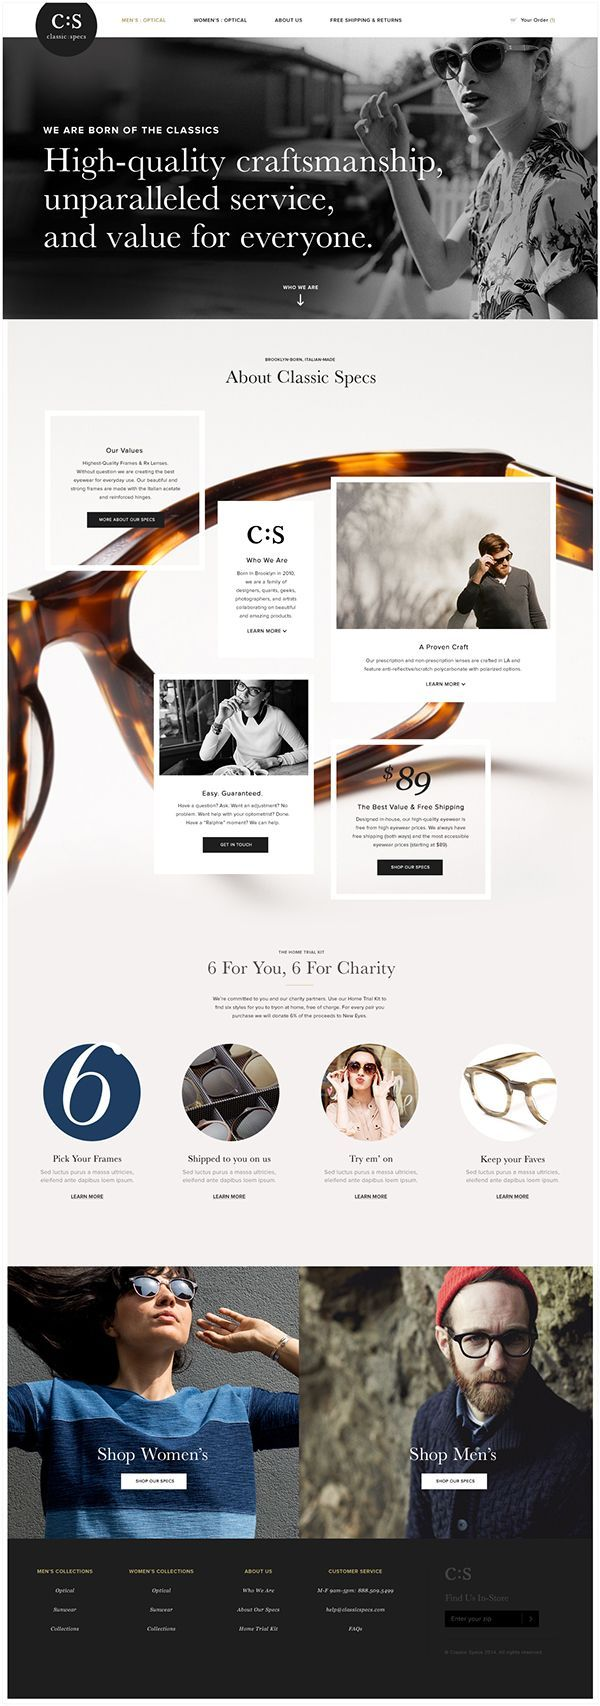 C:S Redesign by Joshua Long, via Behance | web | Pinterest